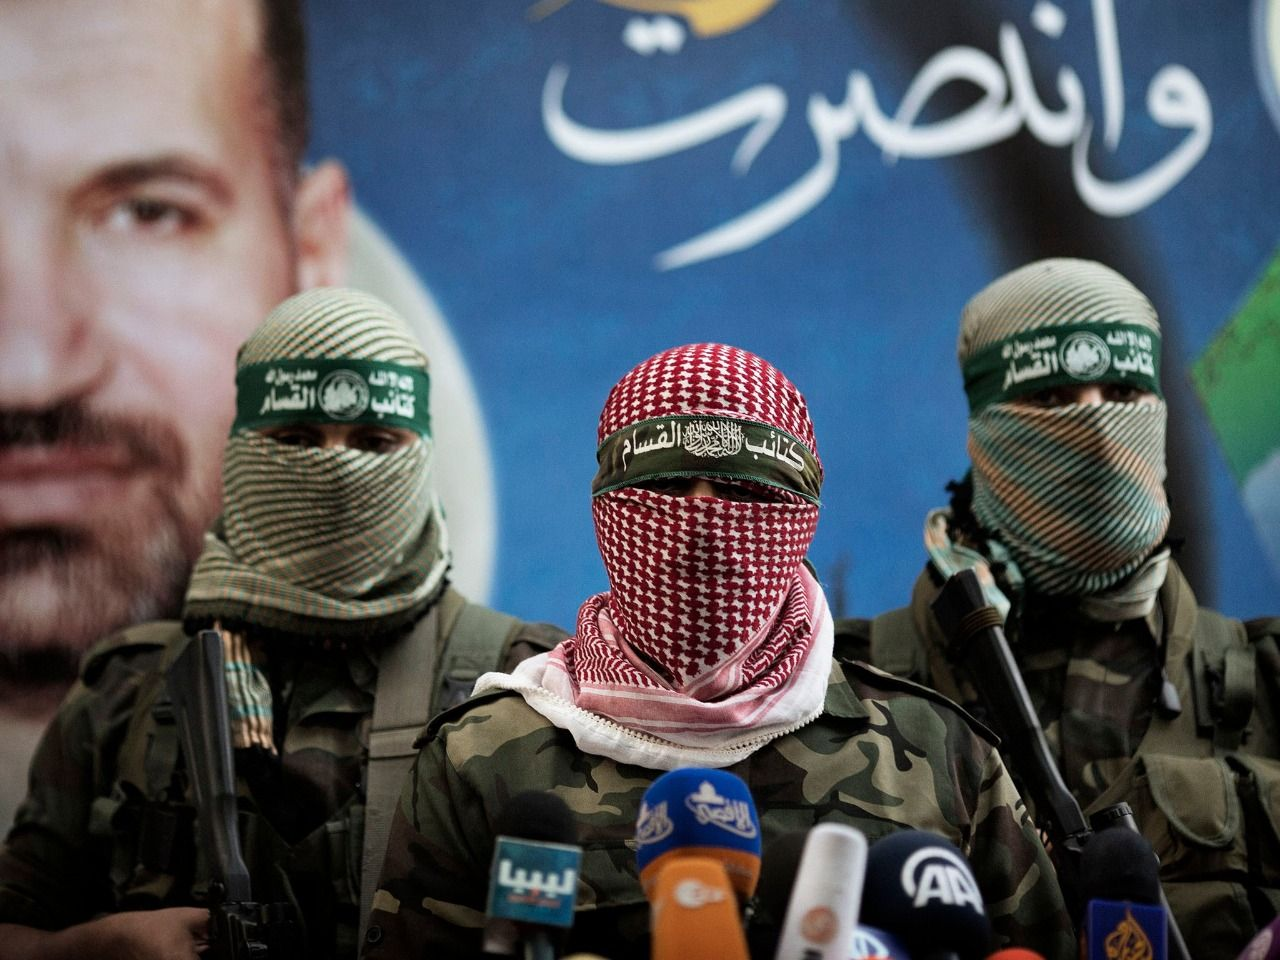 Joint press release by Hamas and Islamic Jihad on current developments